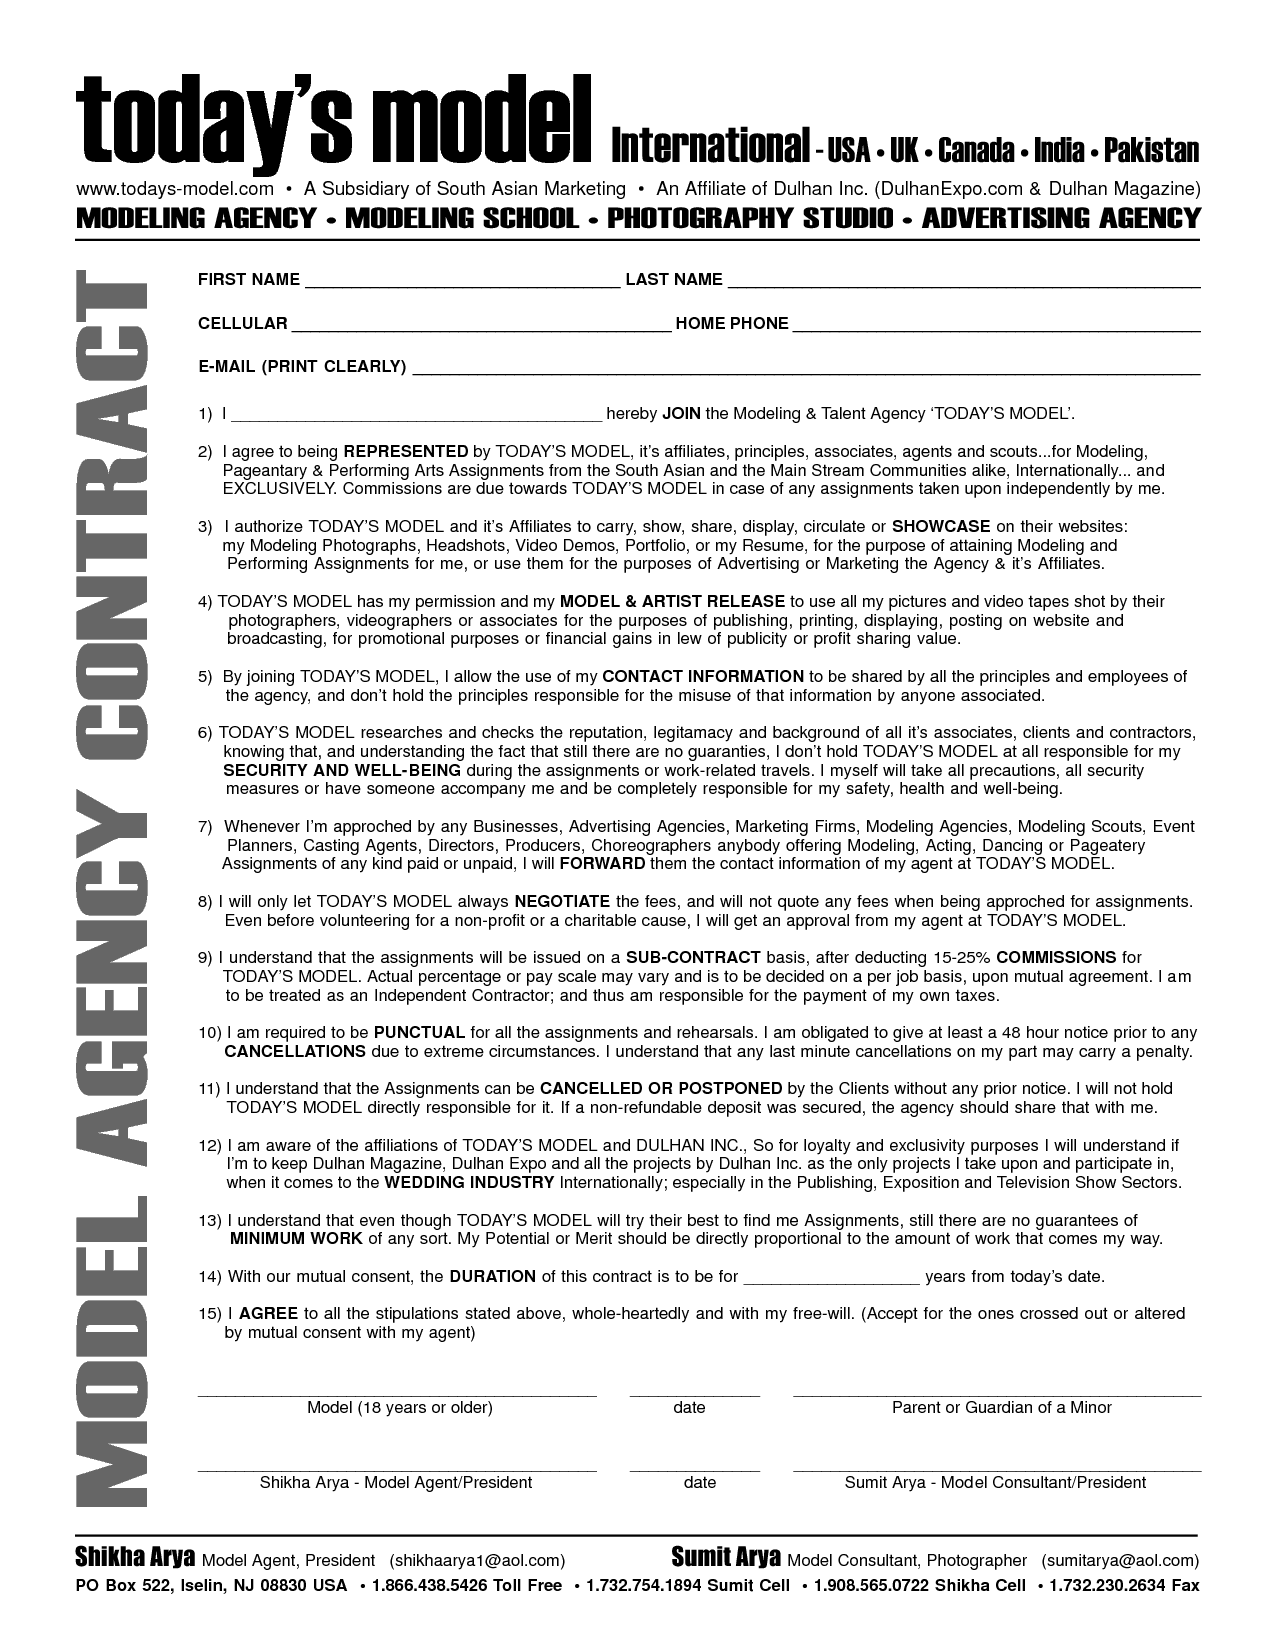 International Business: International Business Contracts Samples   Model Contract  Template